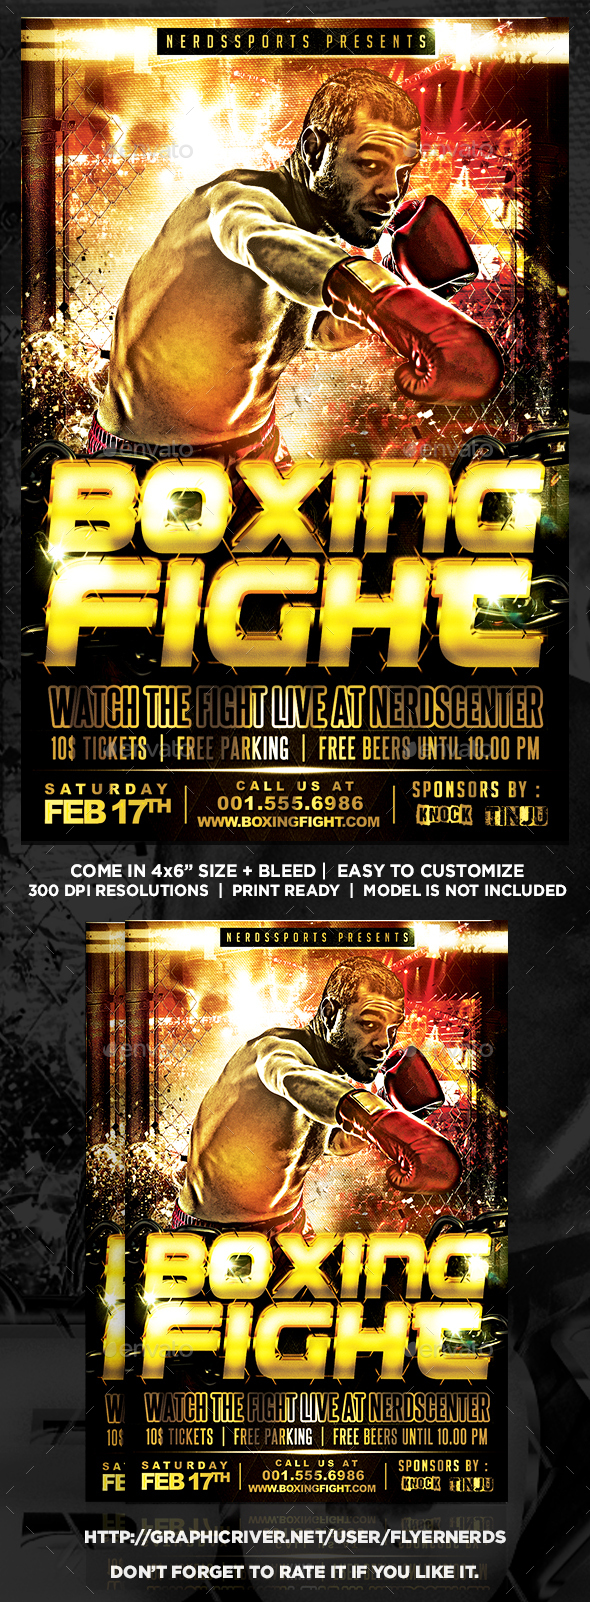 Boxing Championships Sports Flyer - Sports Events